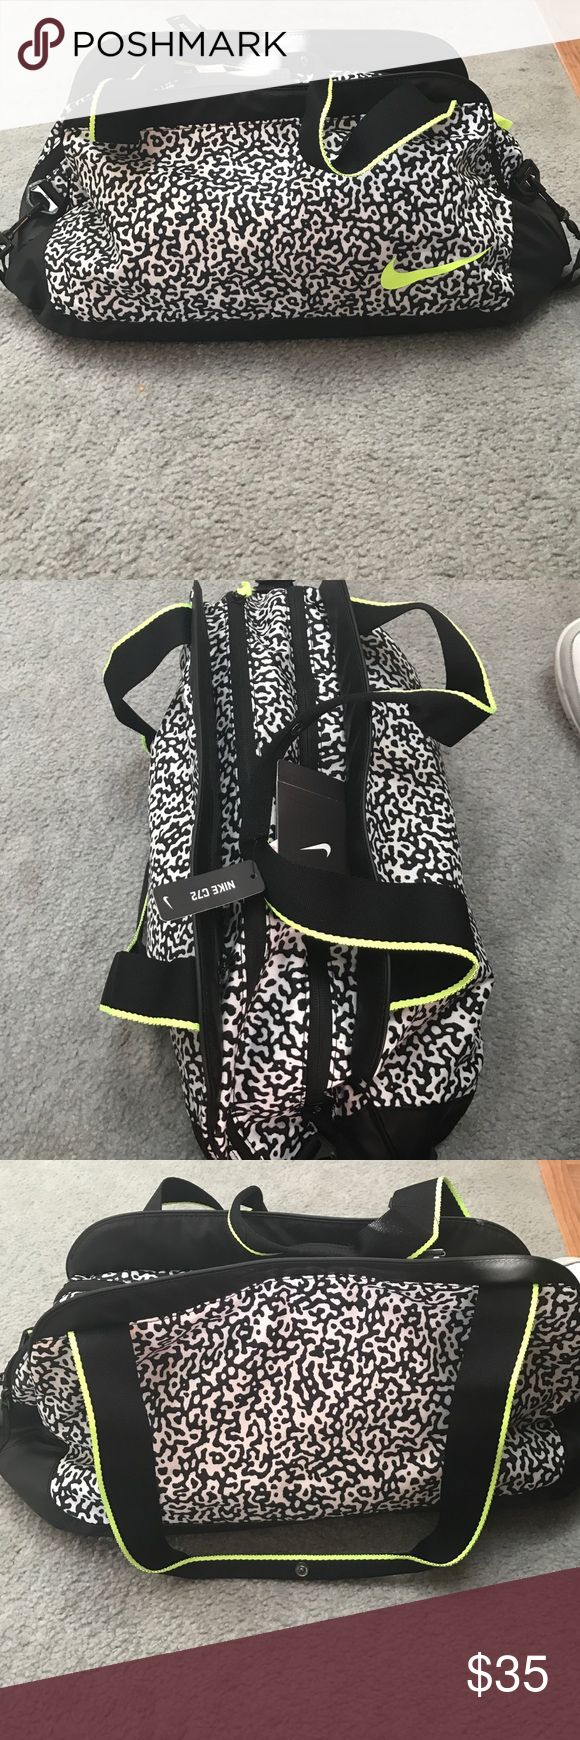 Nike cheetah print duffle bag Nike duffle bag with cheetah black and white print and neon black and yellow straps. Still has tags on and has multiple zipper pockets. Perfect size for the gym Nike Bags Totes